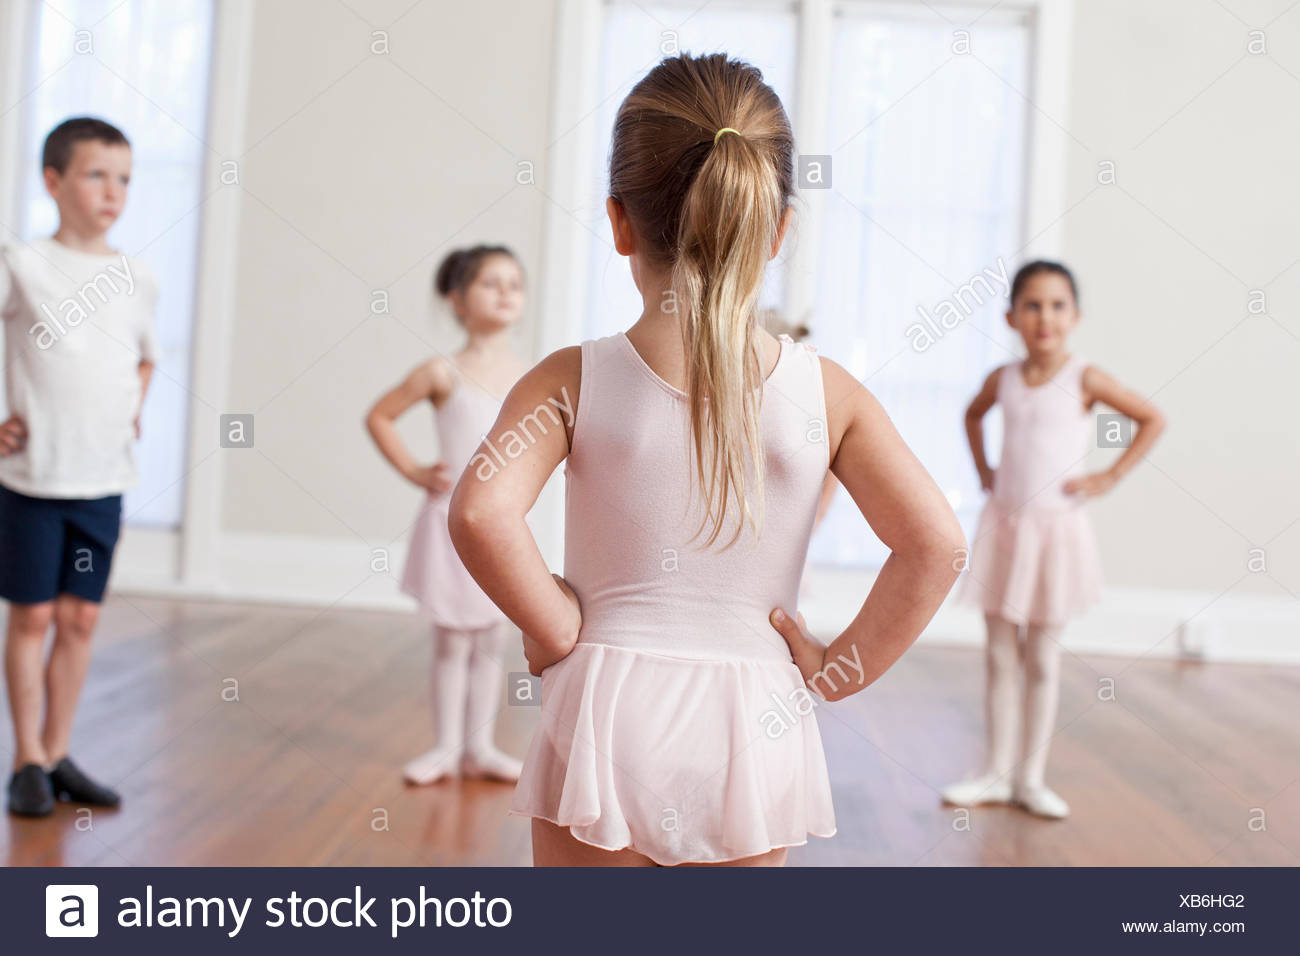 Four children practicing ballet with hands on hips in ballet school - Stock Image